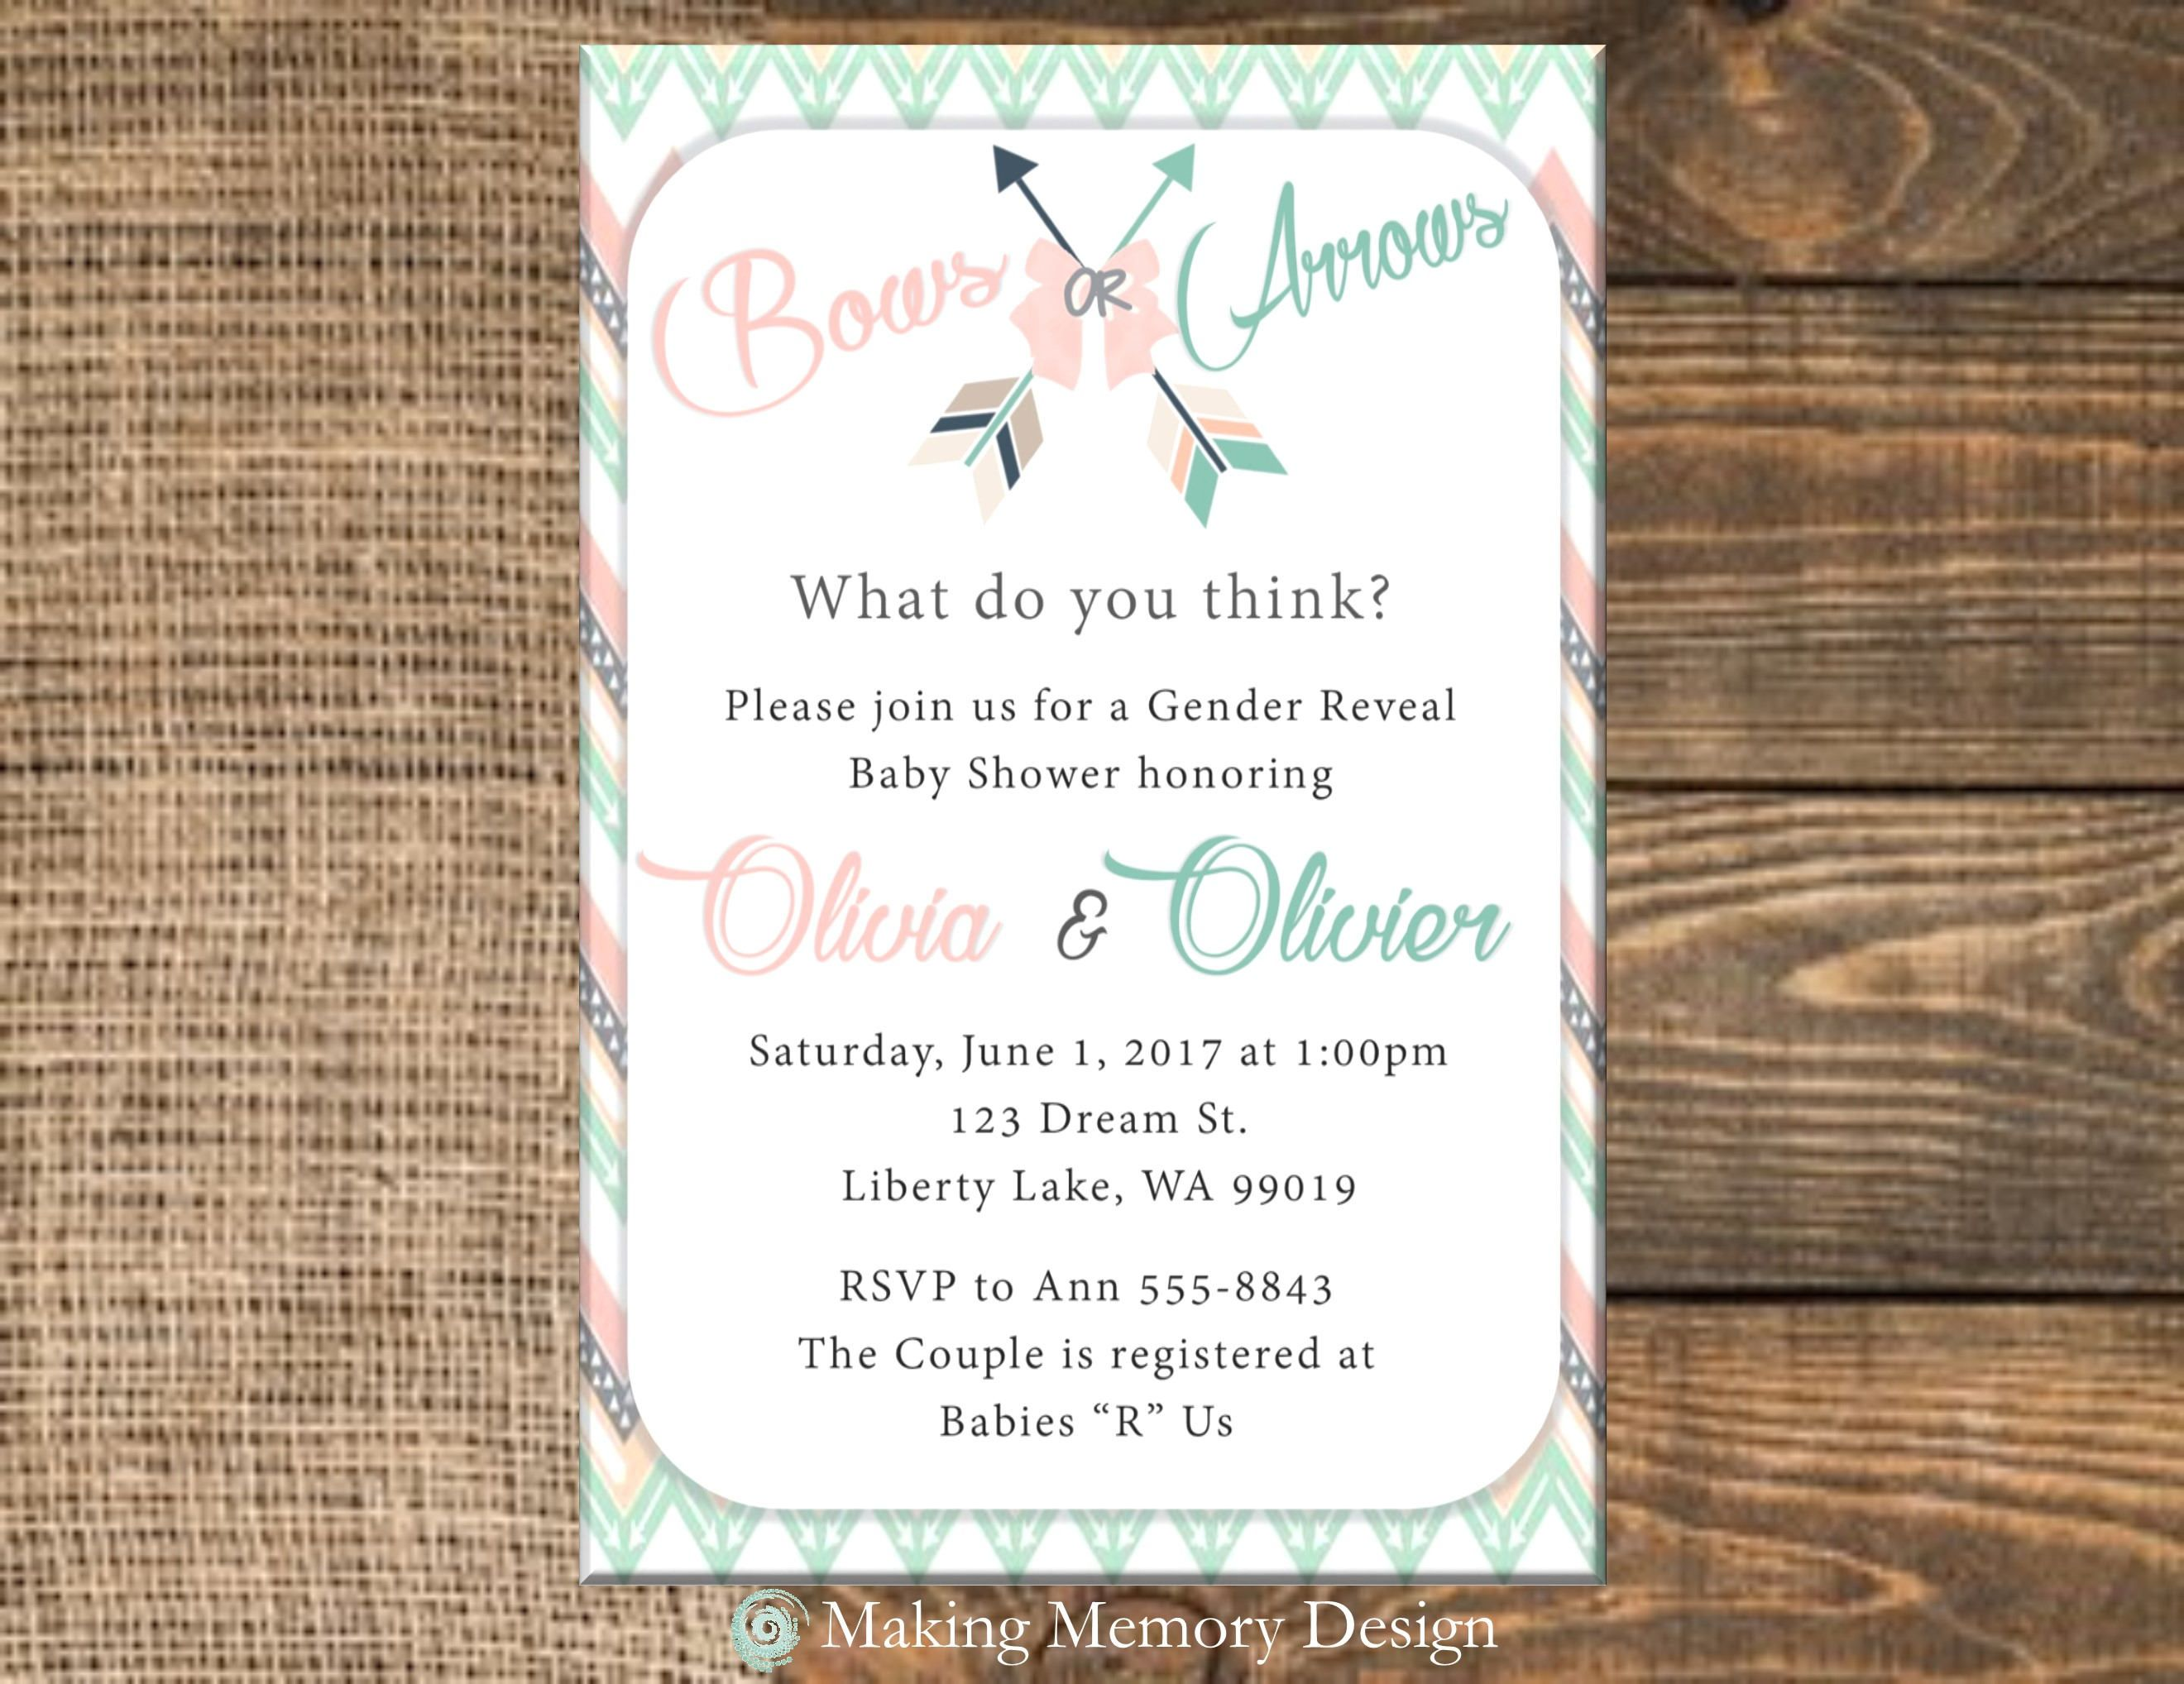 Bows or Arrows Gender Reveal Baby Shower Invitation by